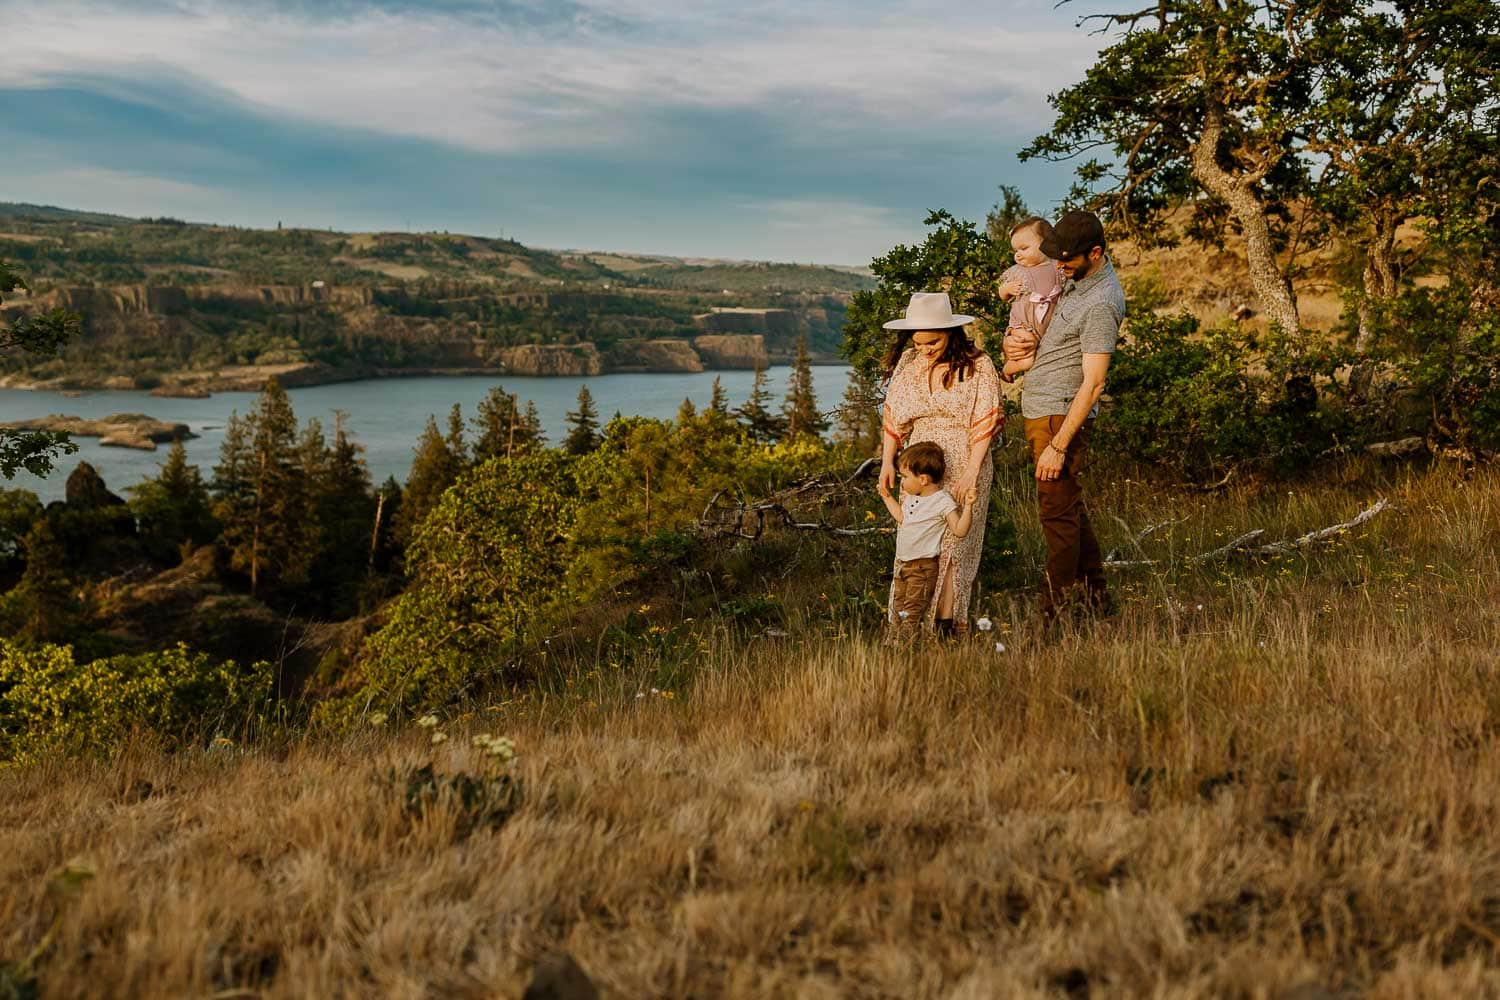 Photo in full sun with beautiful scenic views of the Columbia river gorge